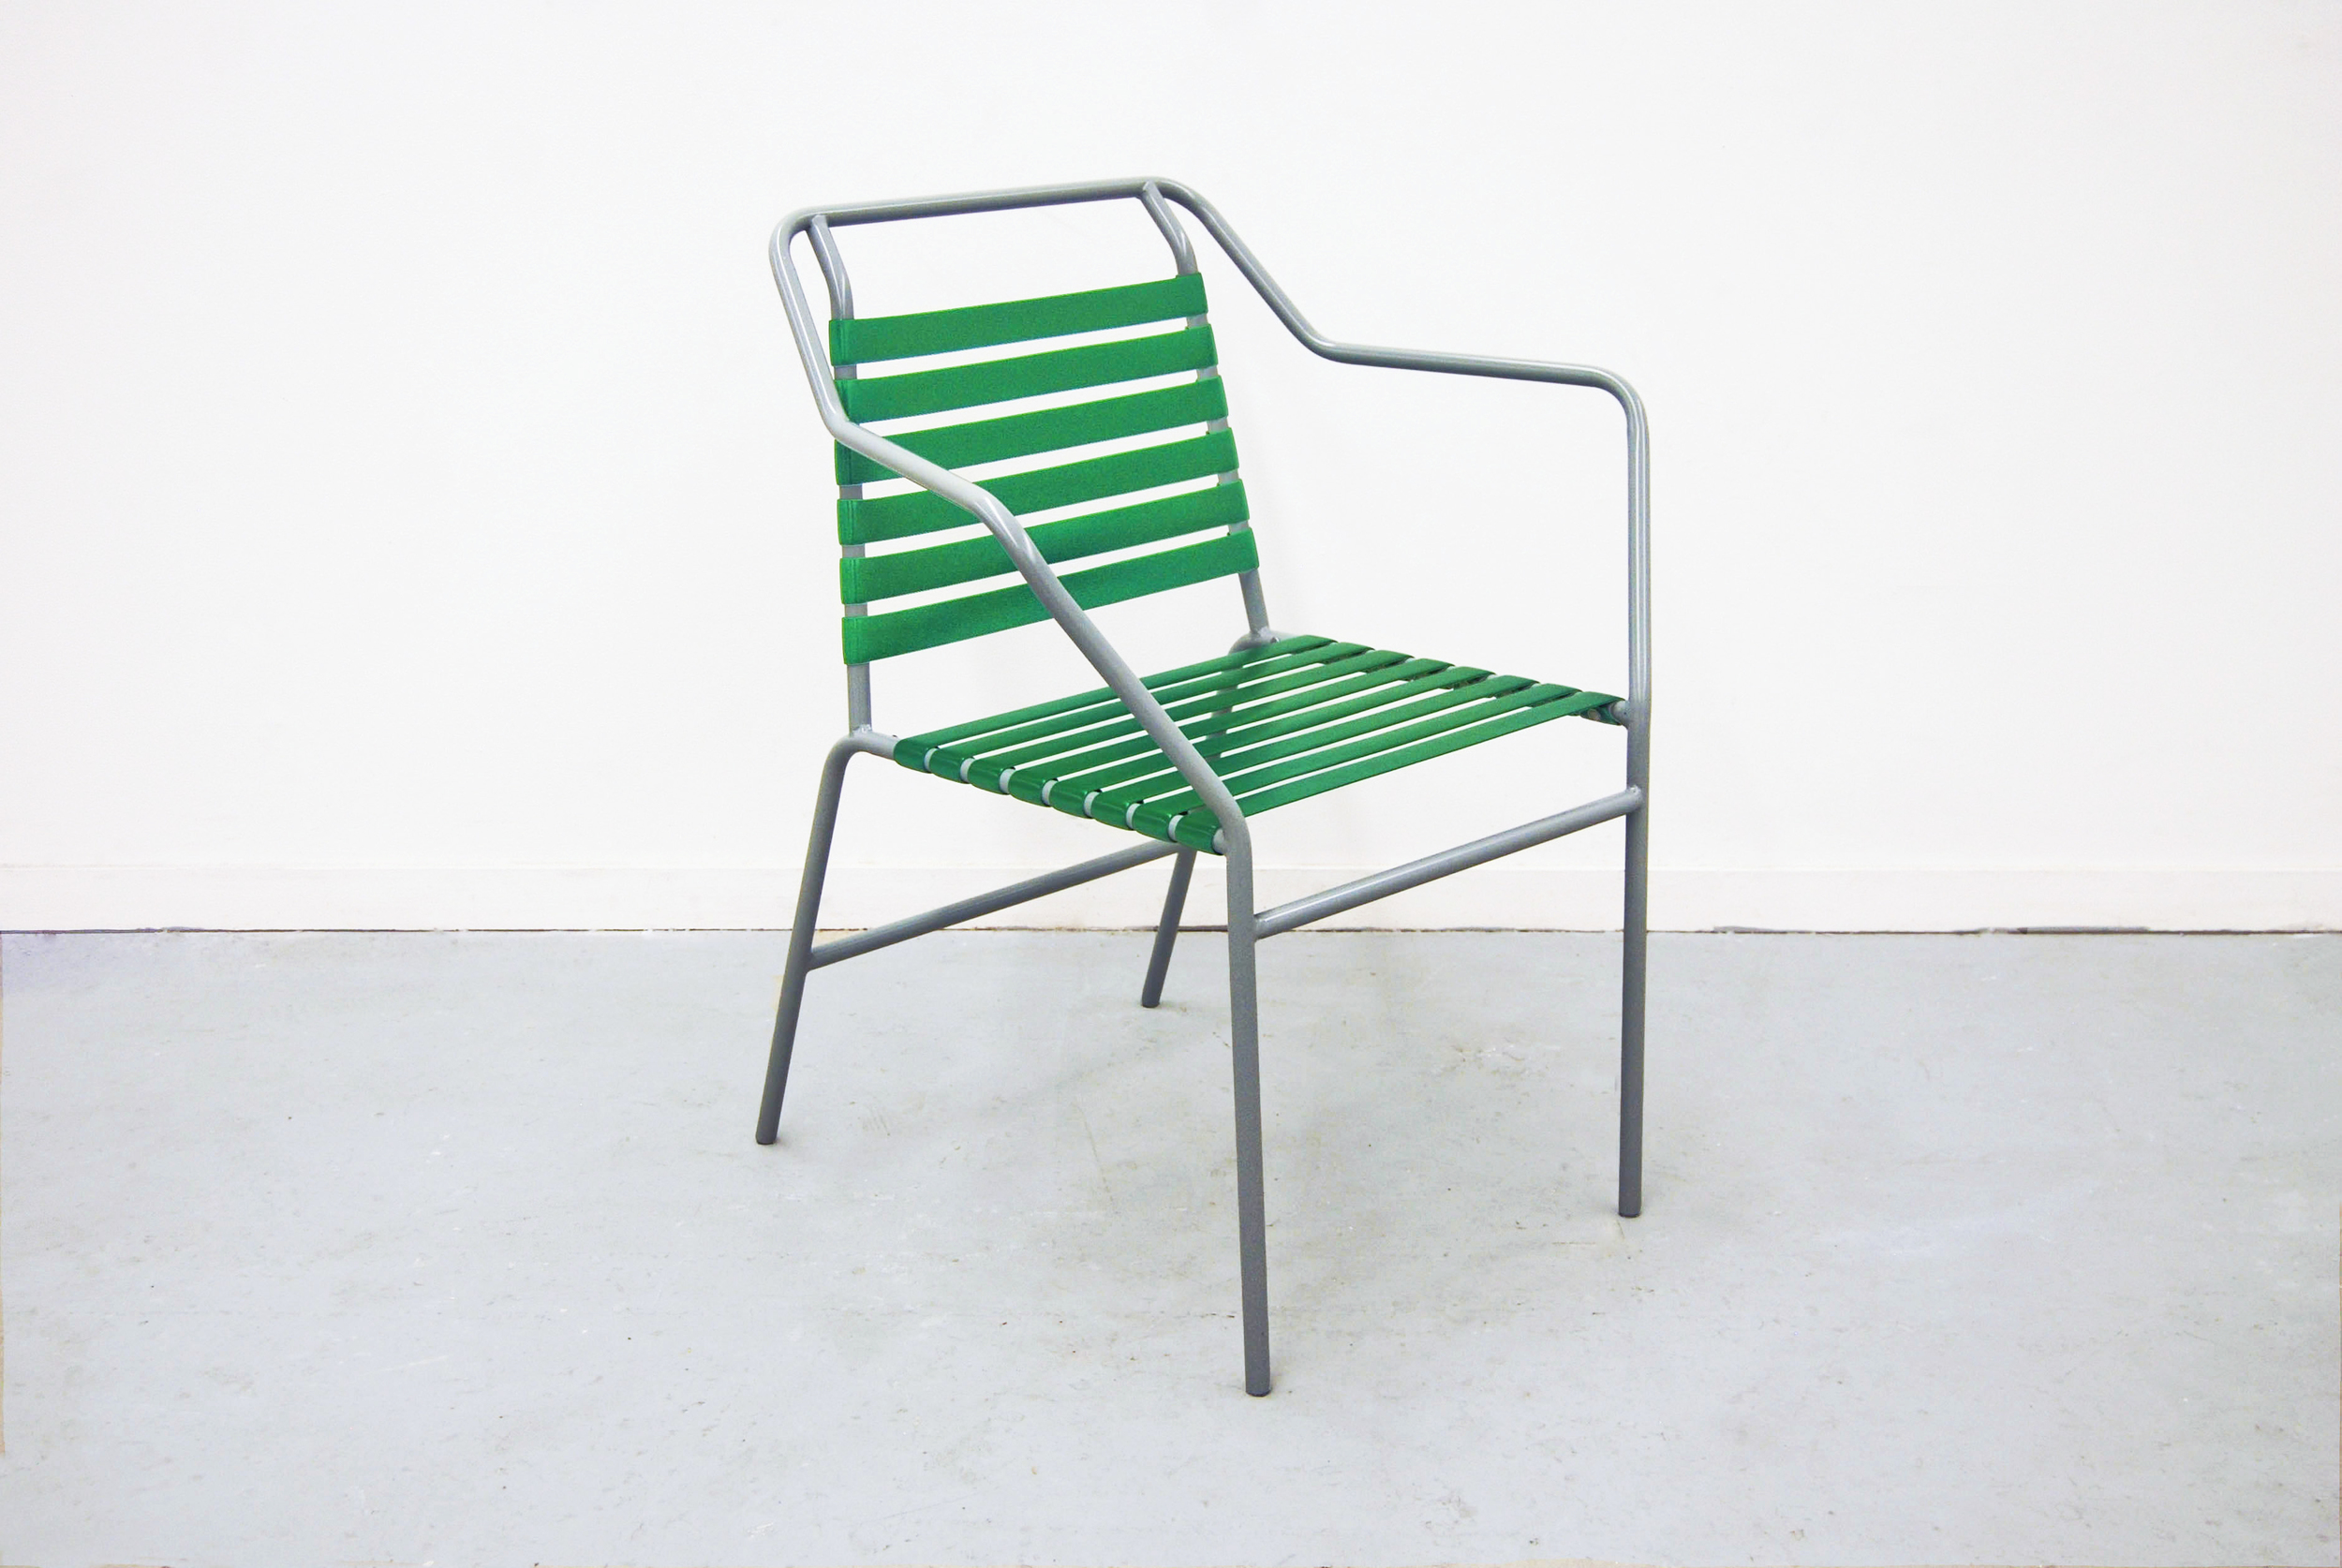 Visibility's Poolside Chair